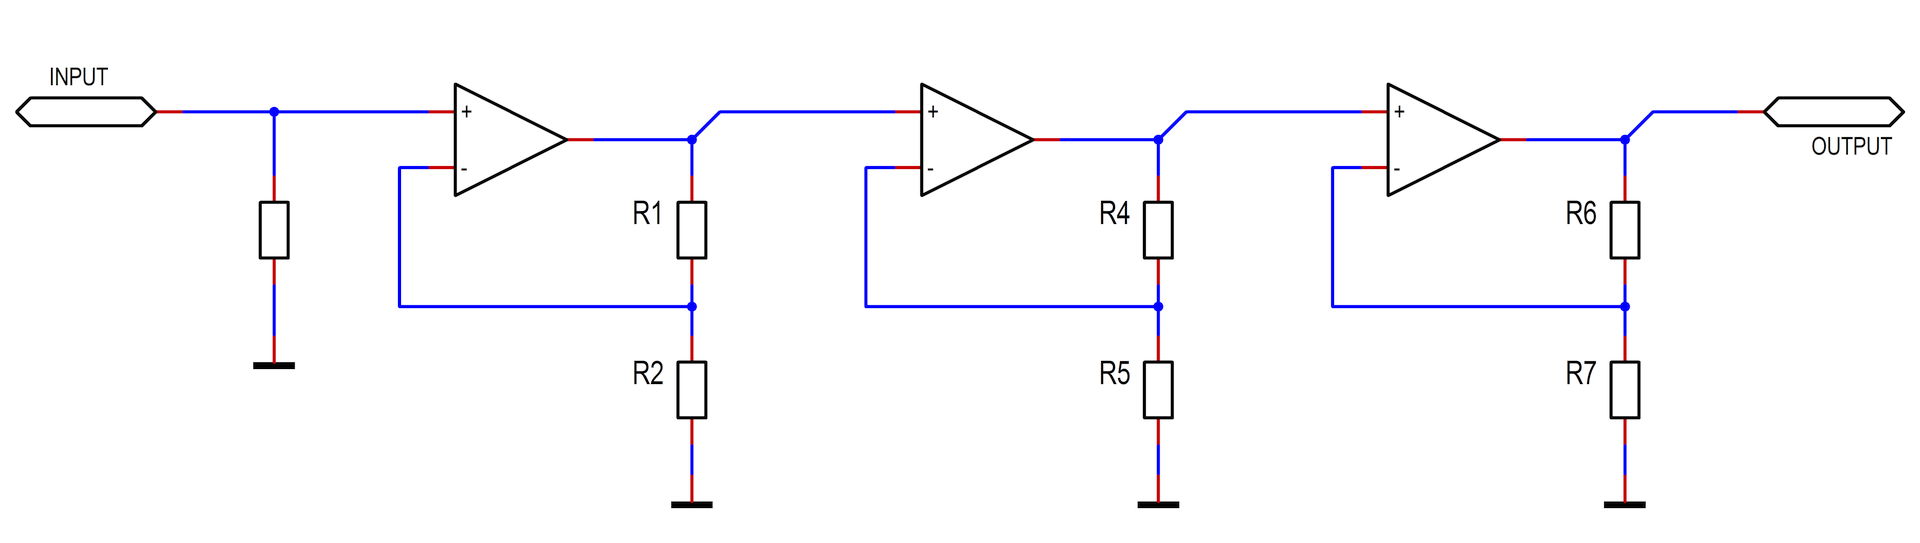 Cascading Opamps For Increased Bandwidth Op Amp How Does This Opamp Noninverting Amplifier Work